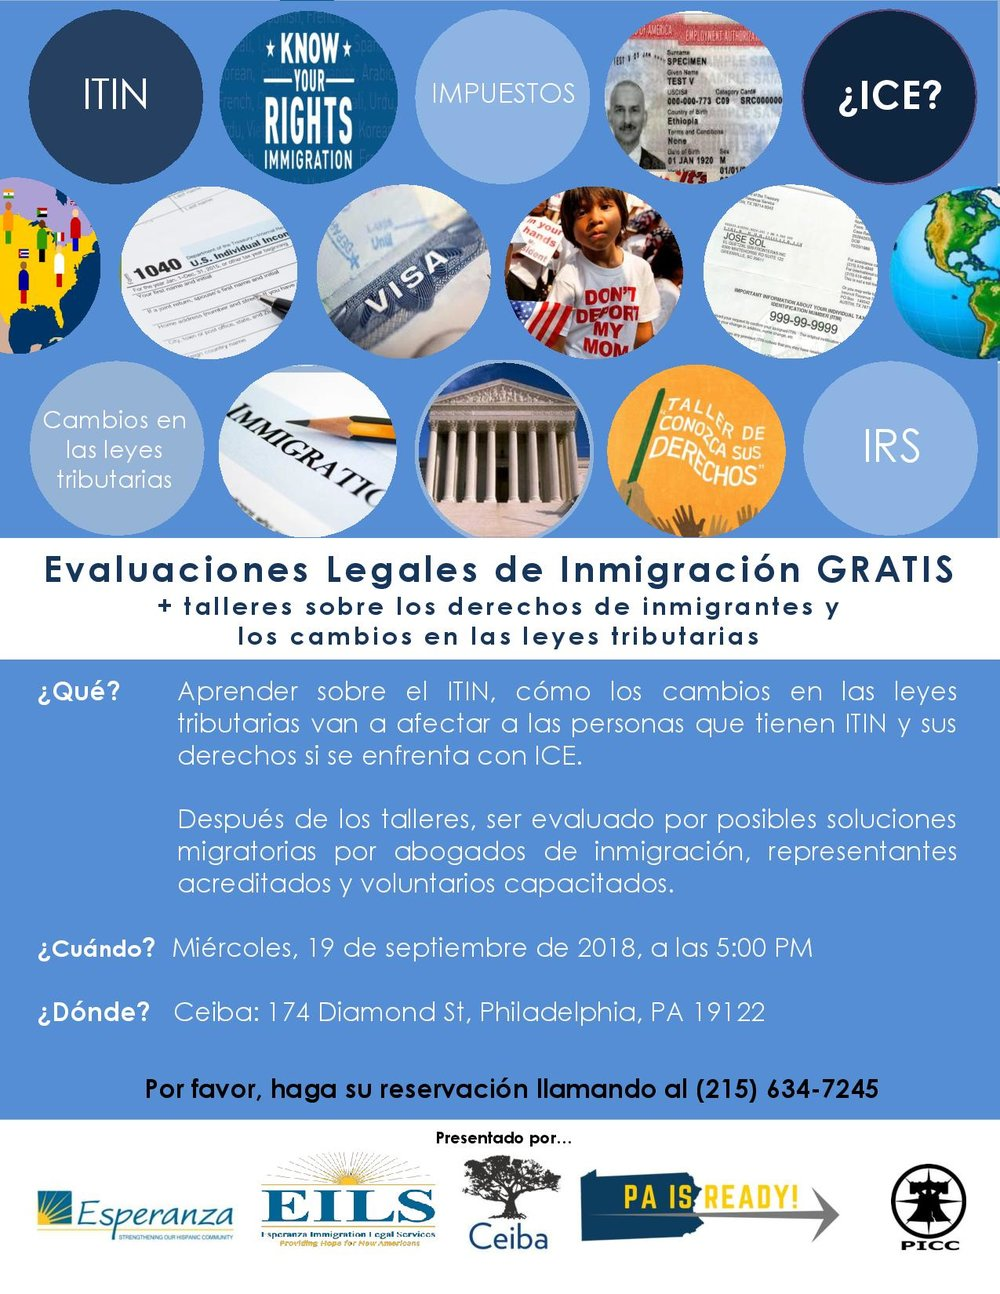 ITIN KYR Workshop Flyer 9.19.2018 Spanish-page-001.jpg